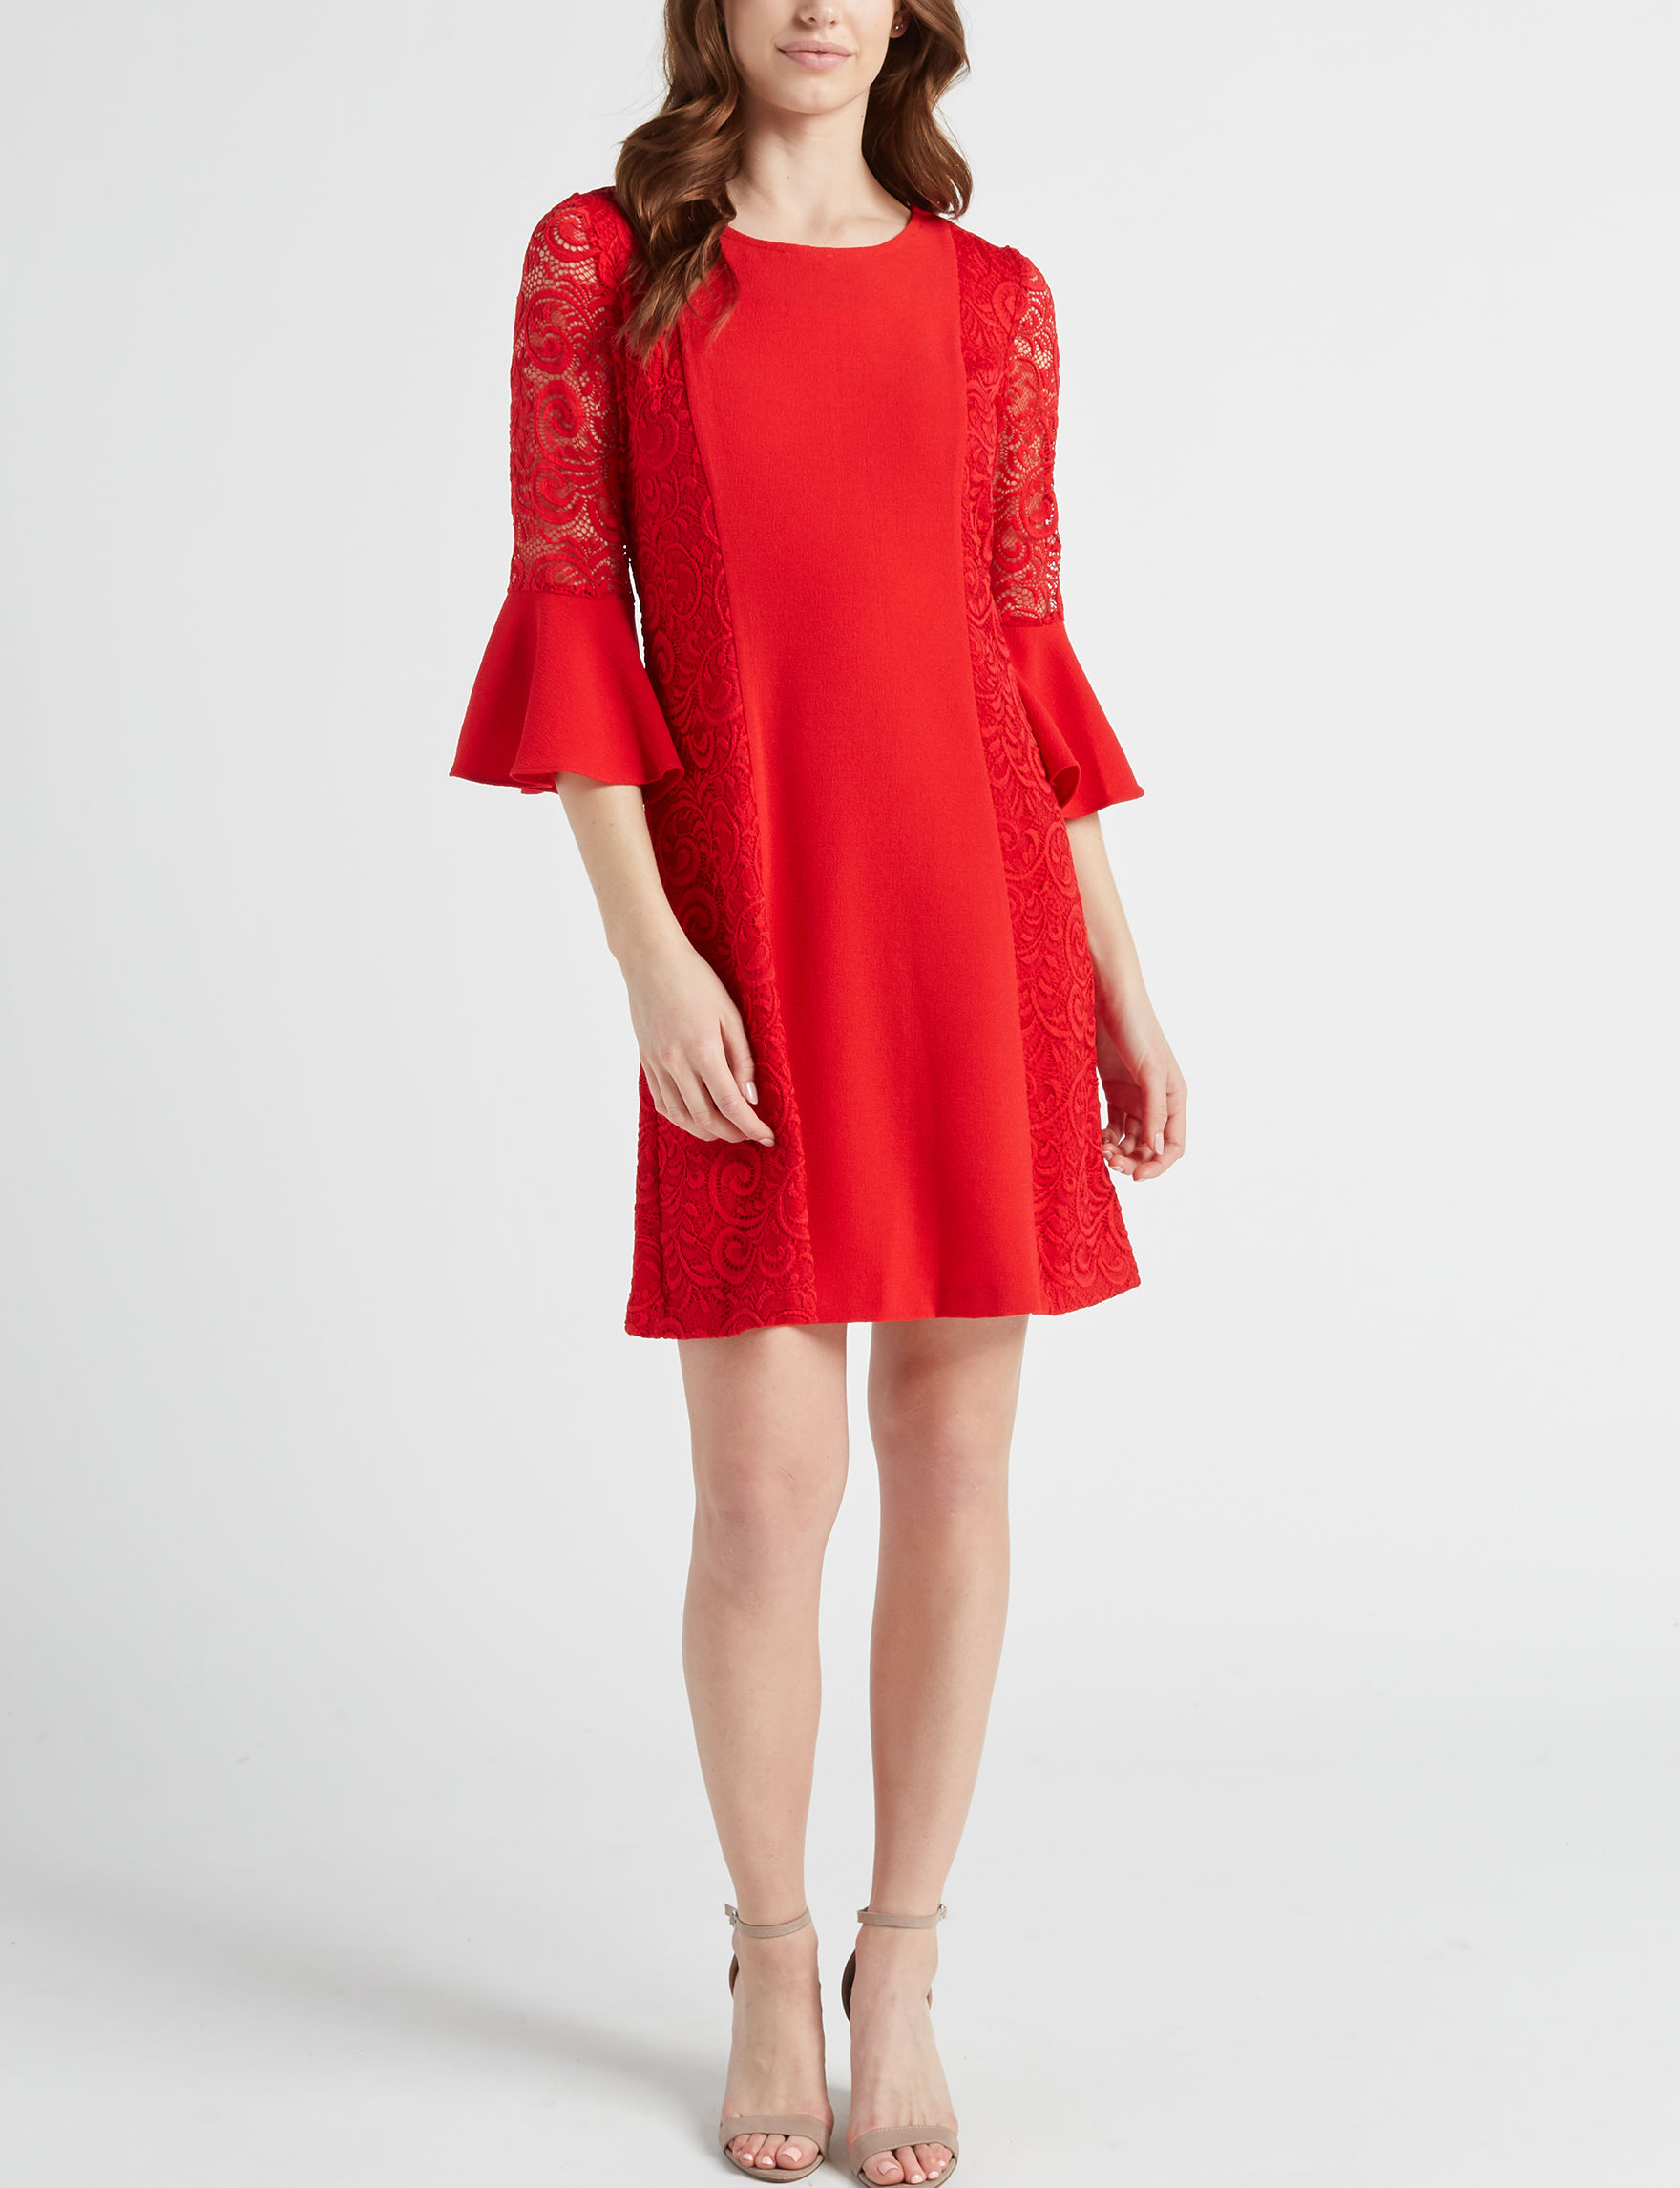 Studio One Red Everyday & Casual Fit & Flare Dresses